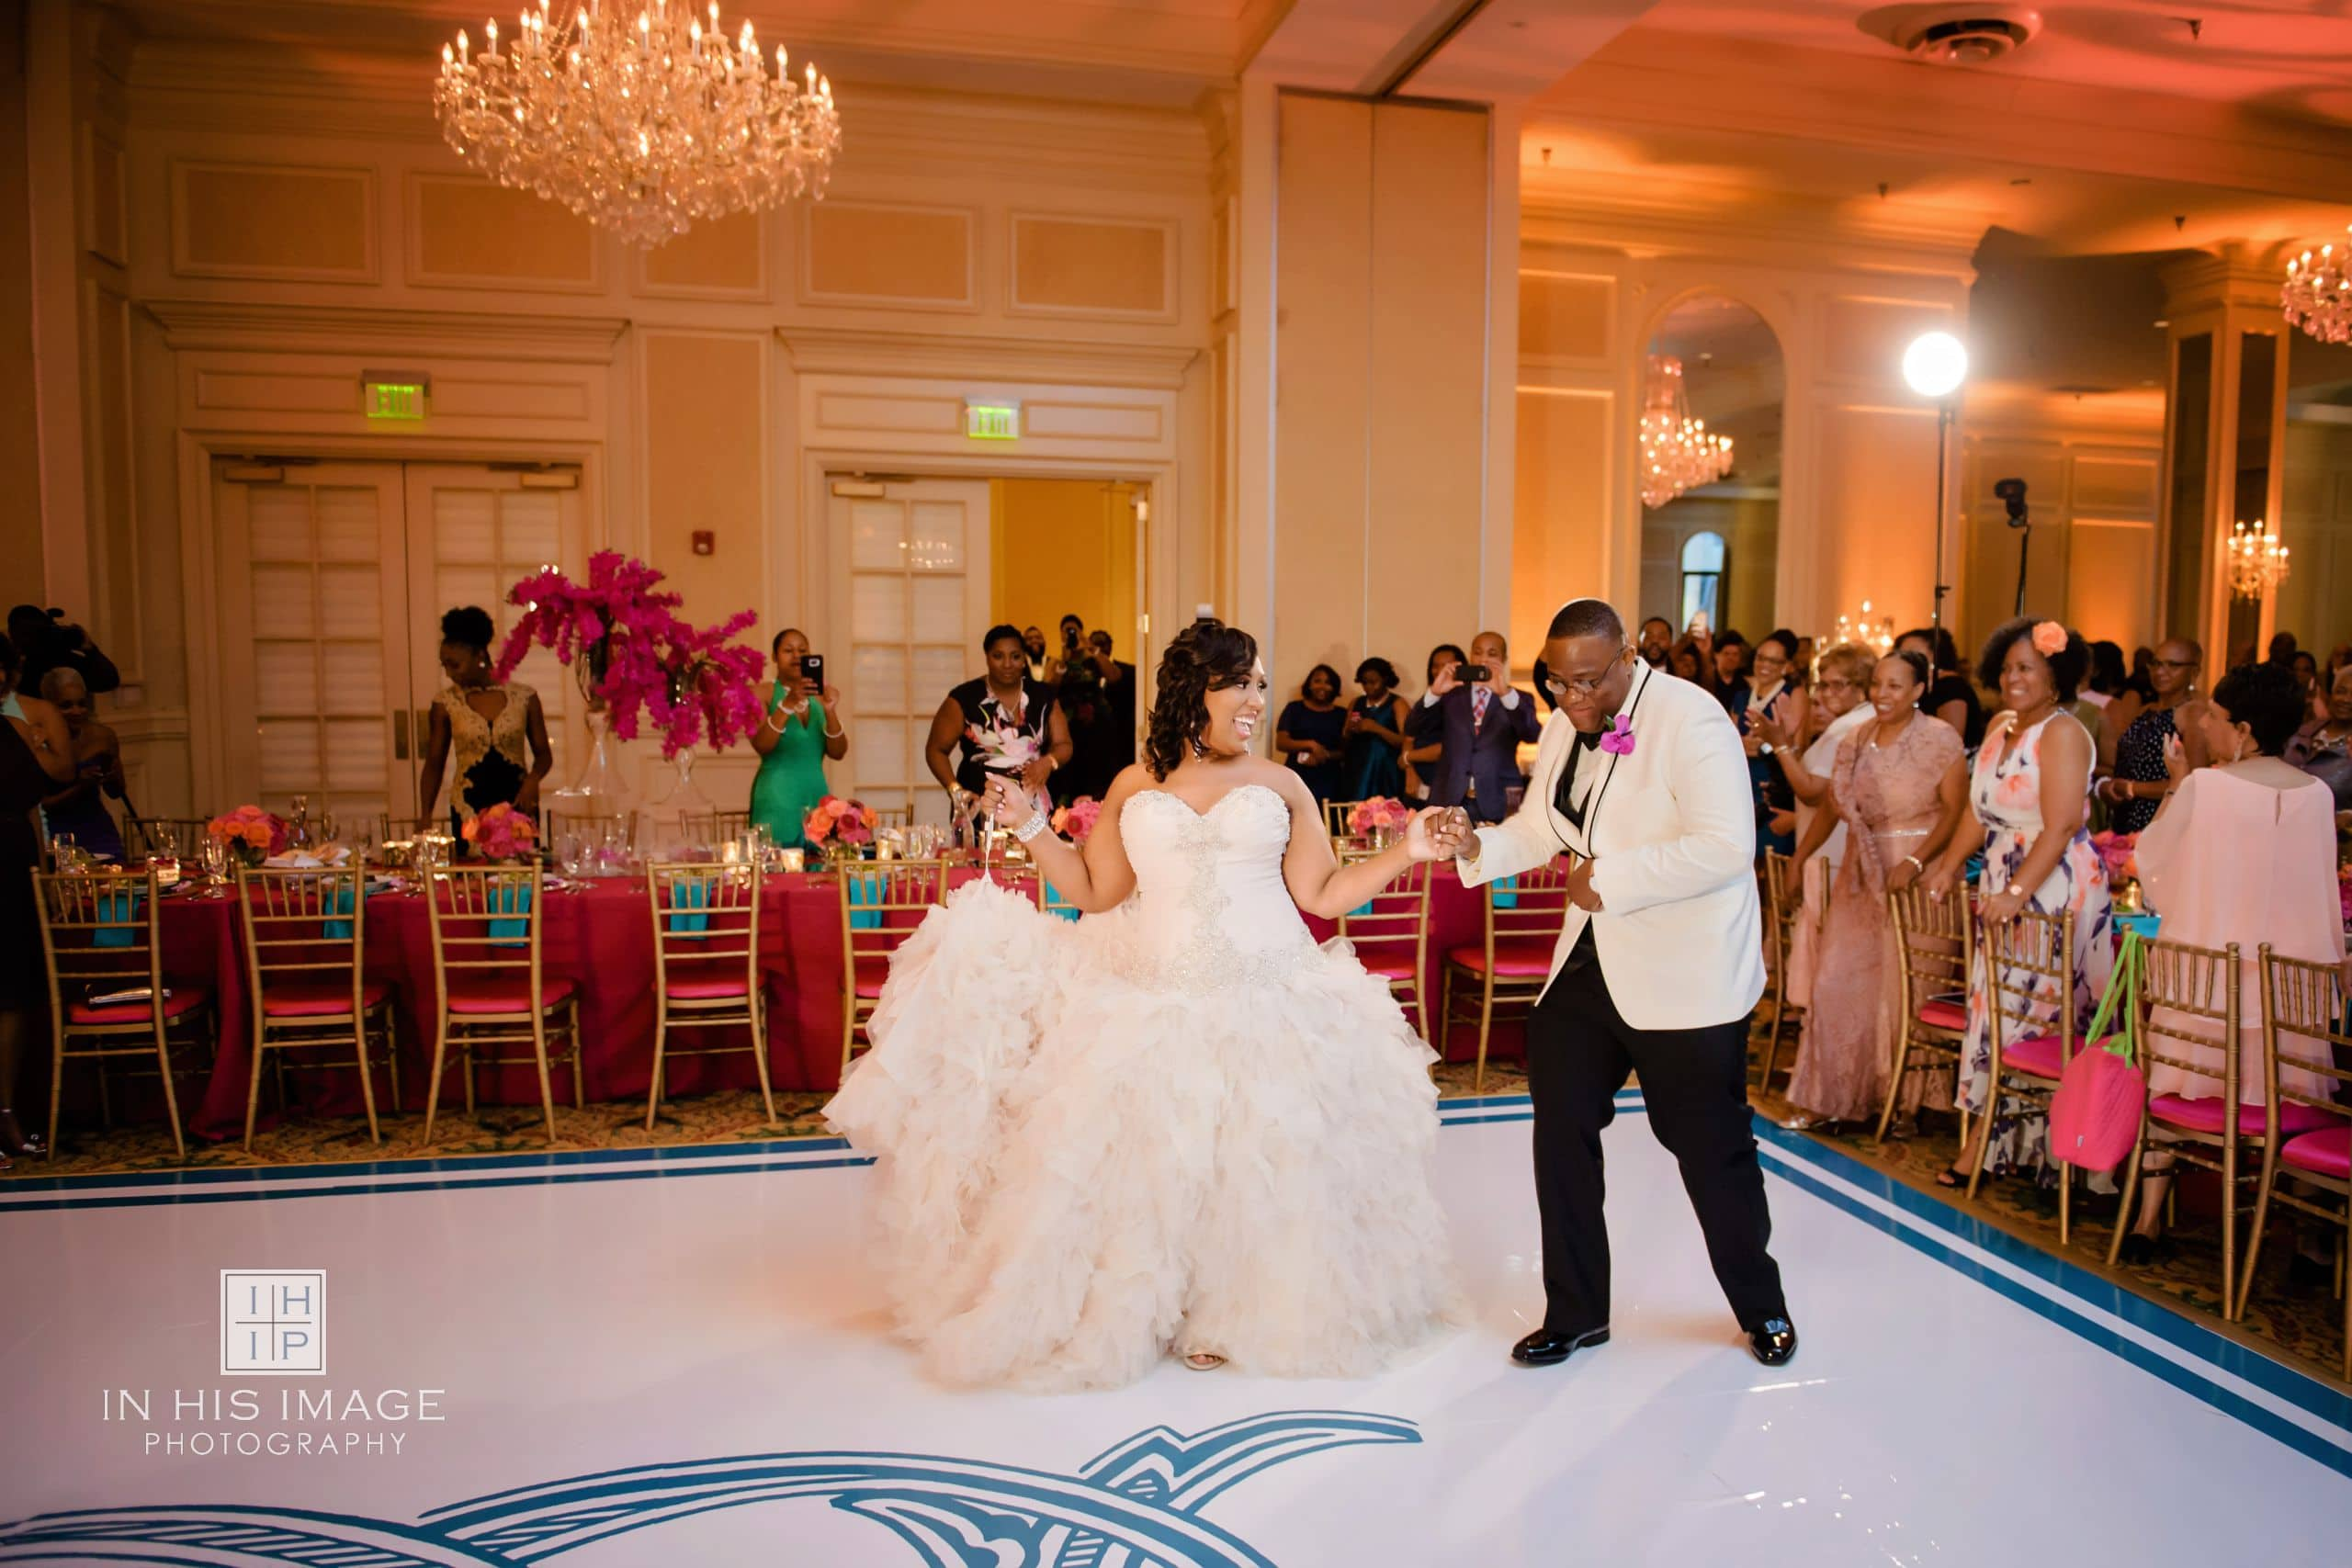 Crystal wedding: traditions, gifts, congratulations